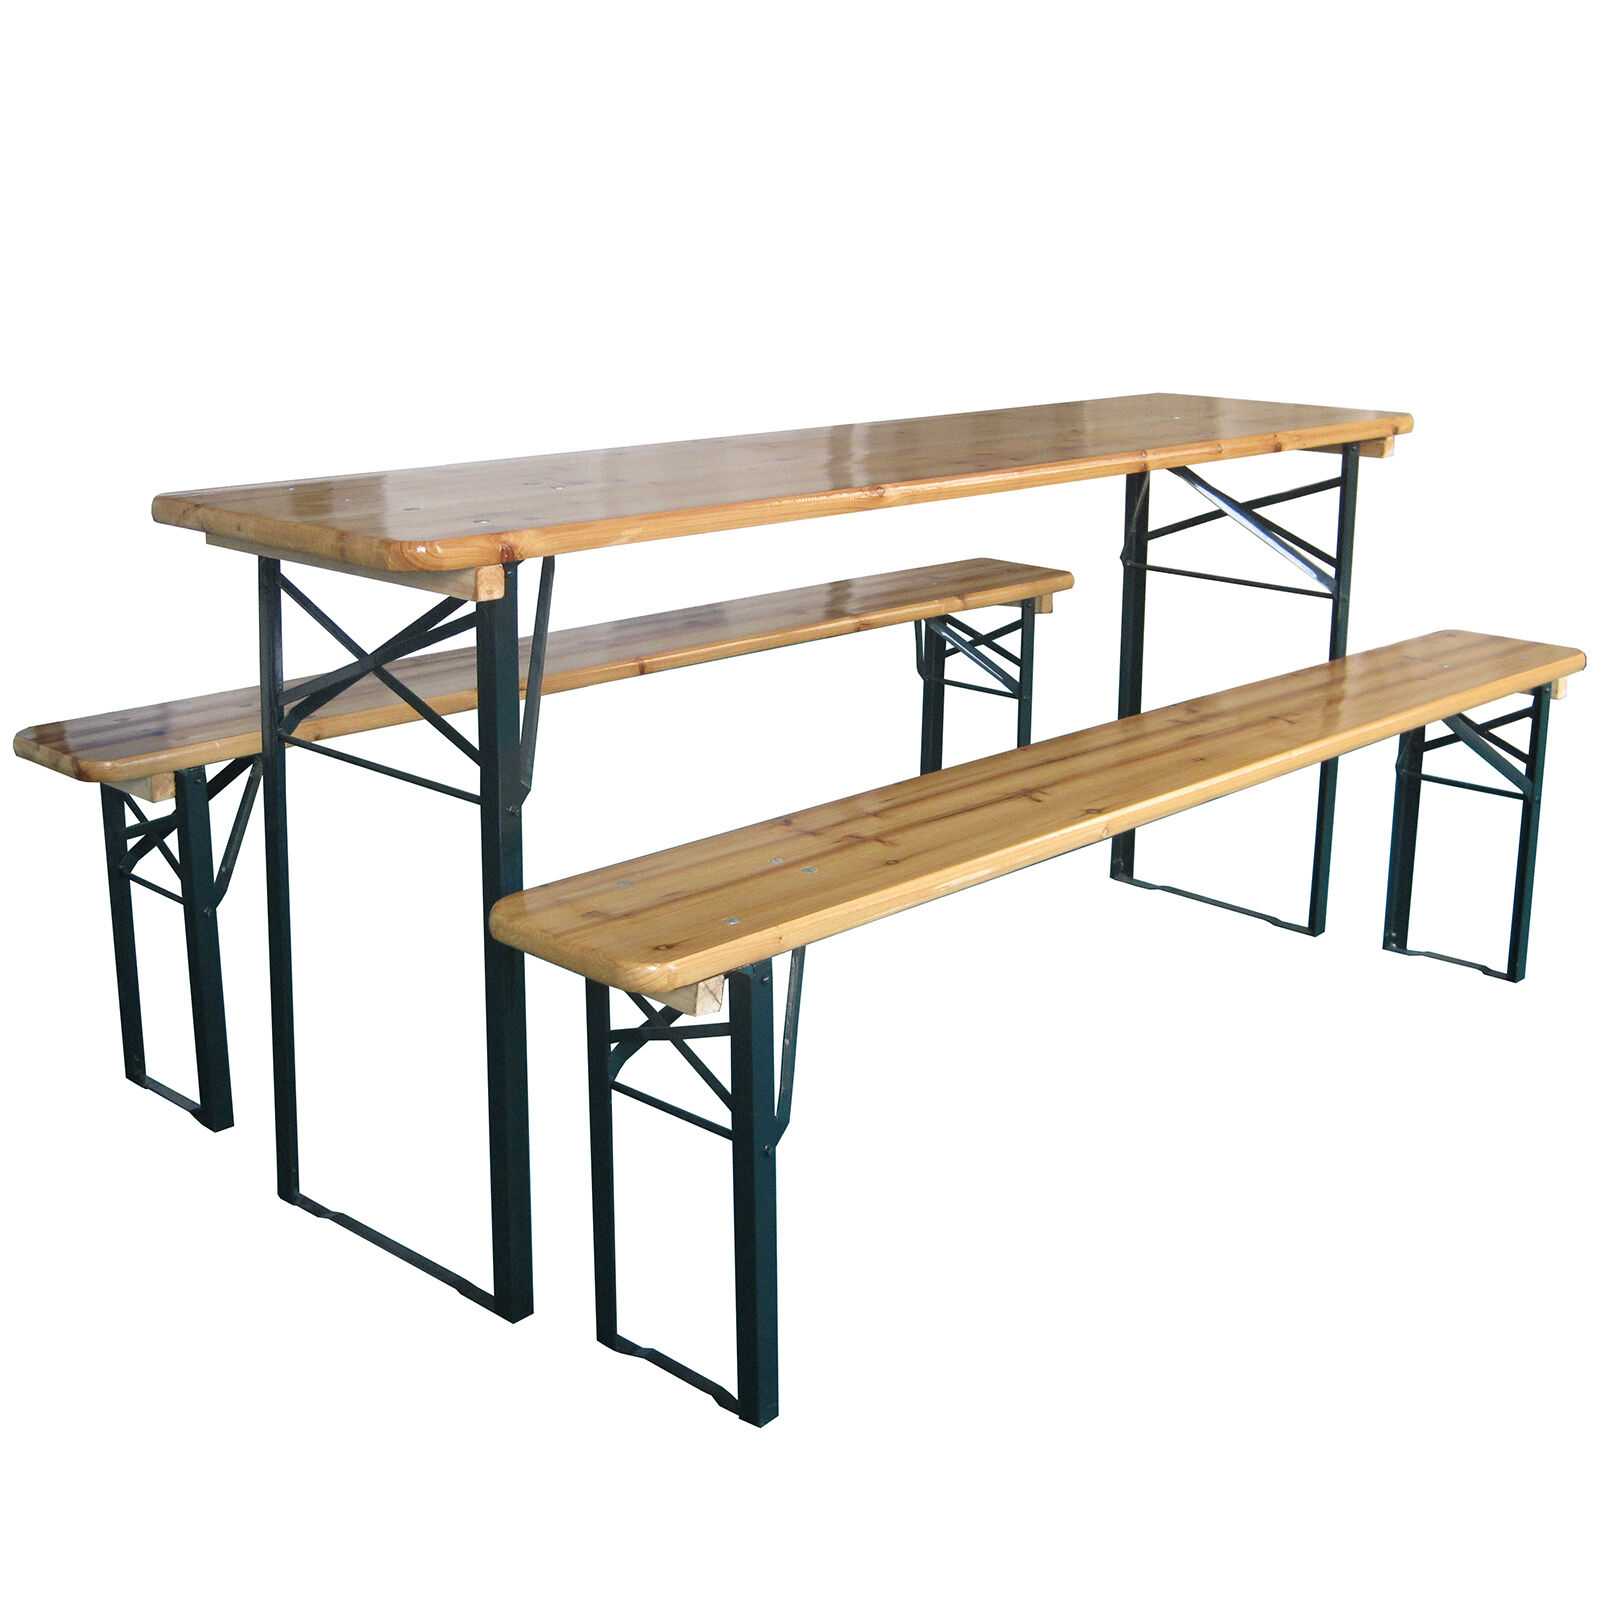 Garden Furniture - Outdoor Wooden Folding Beer Table Bench Garden Furniture Set Steel Trestle Legs